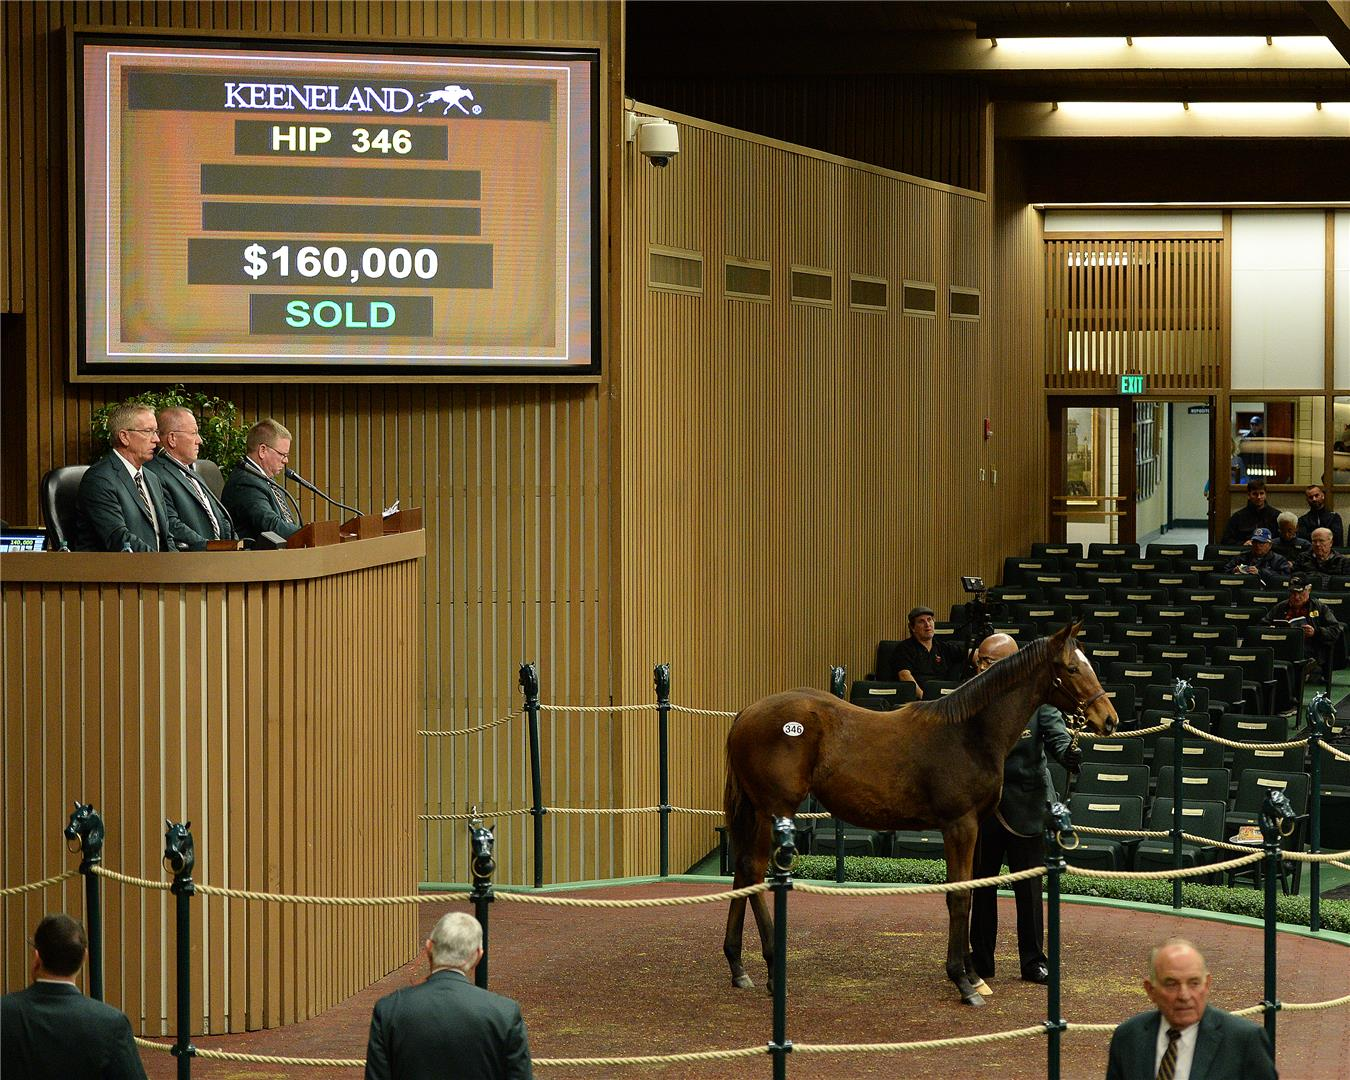 Fed Biz's first weanling sells for $160,000 title=